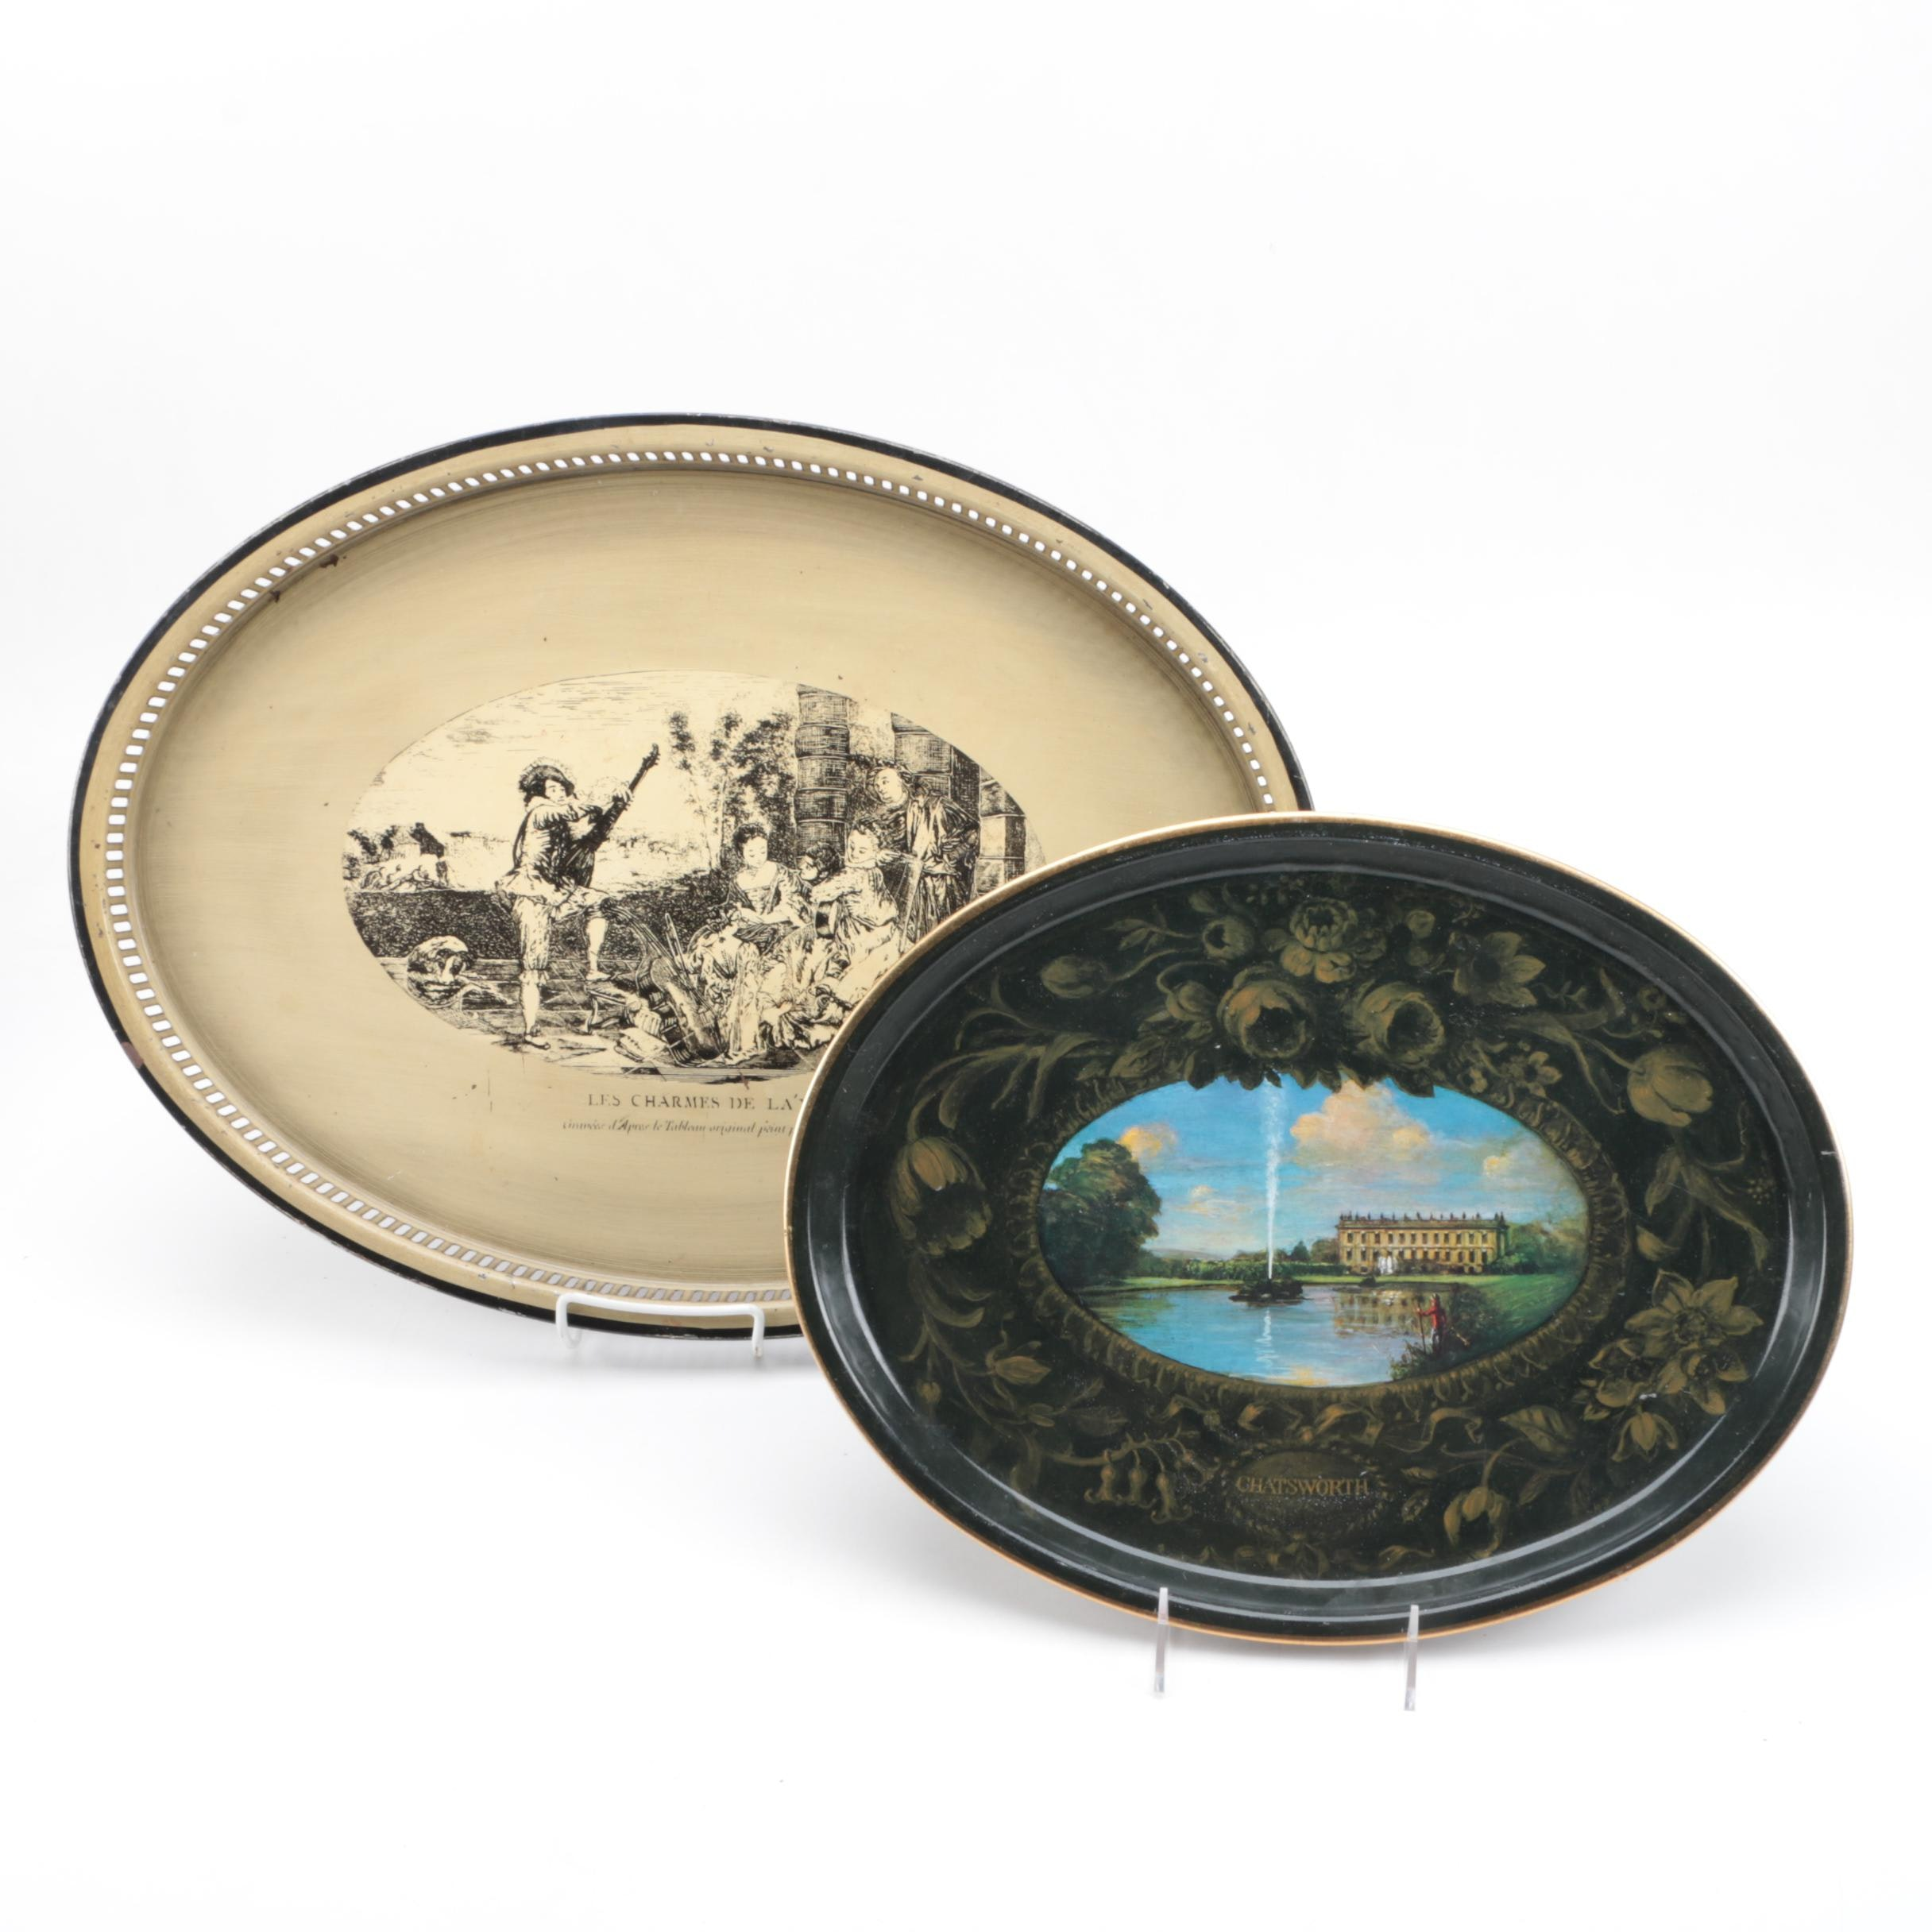 Pairing of Decorative Metal Serving Trays